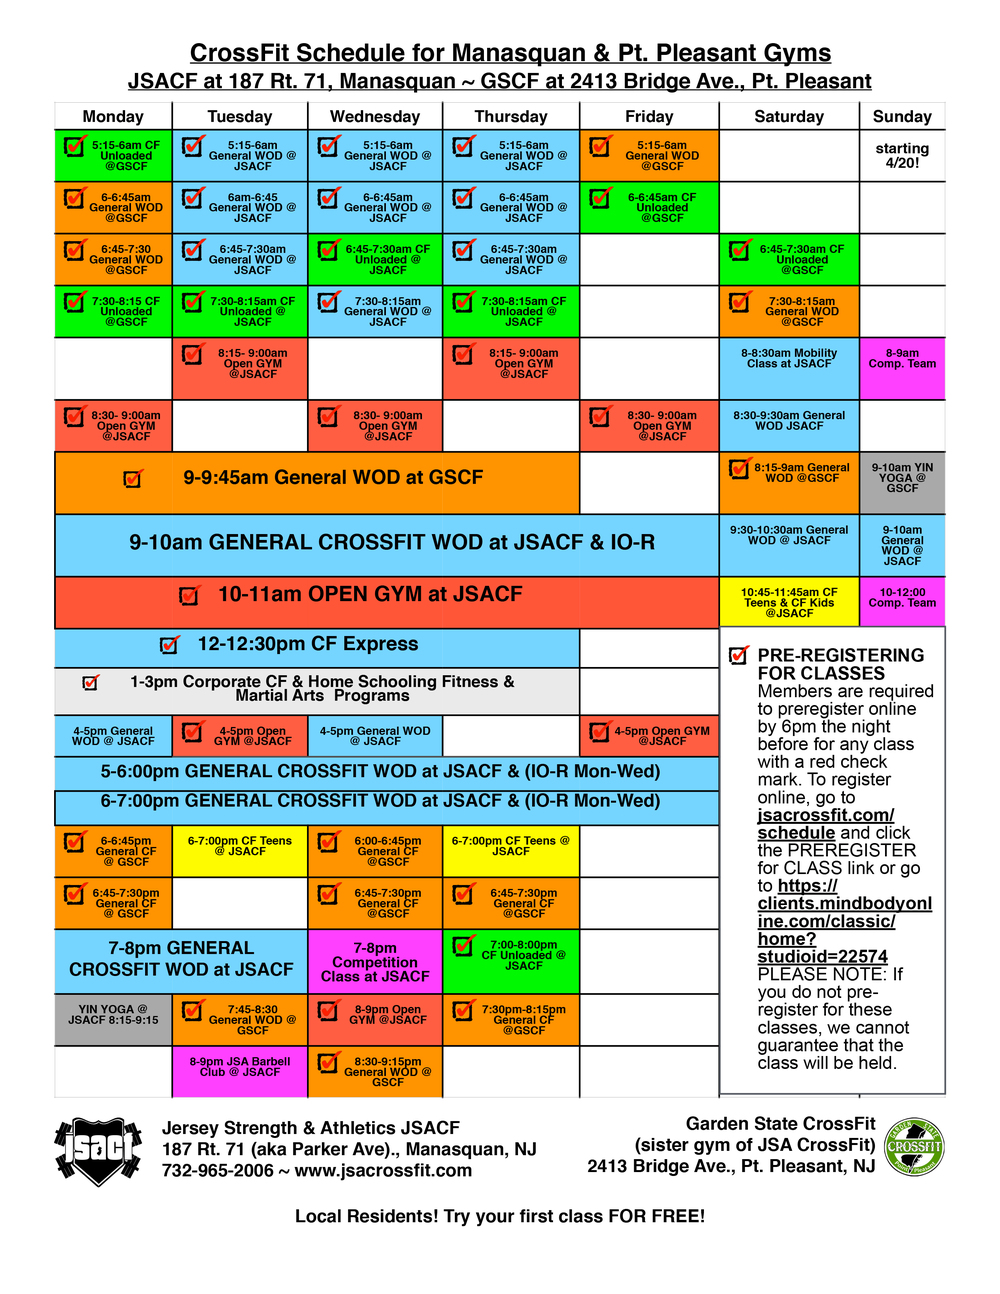 Schedule — jsa crossfit since the premier